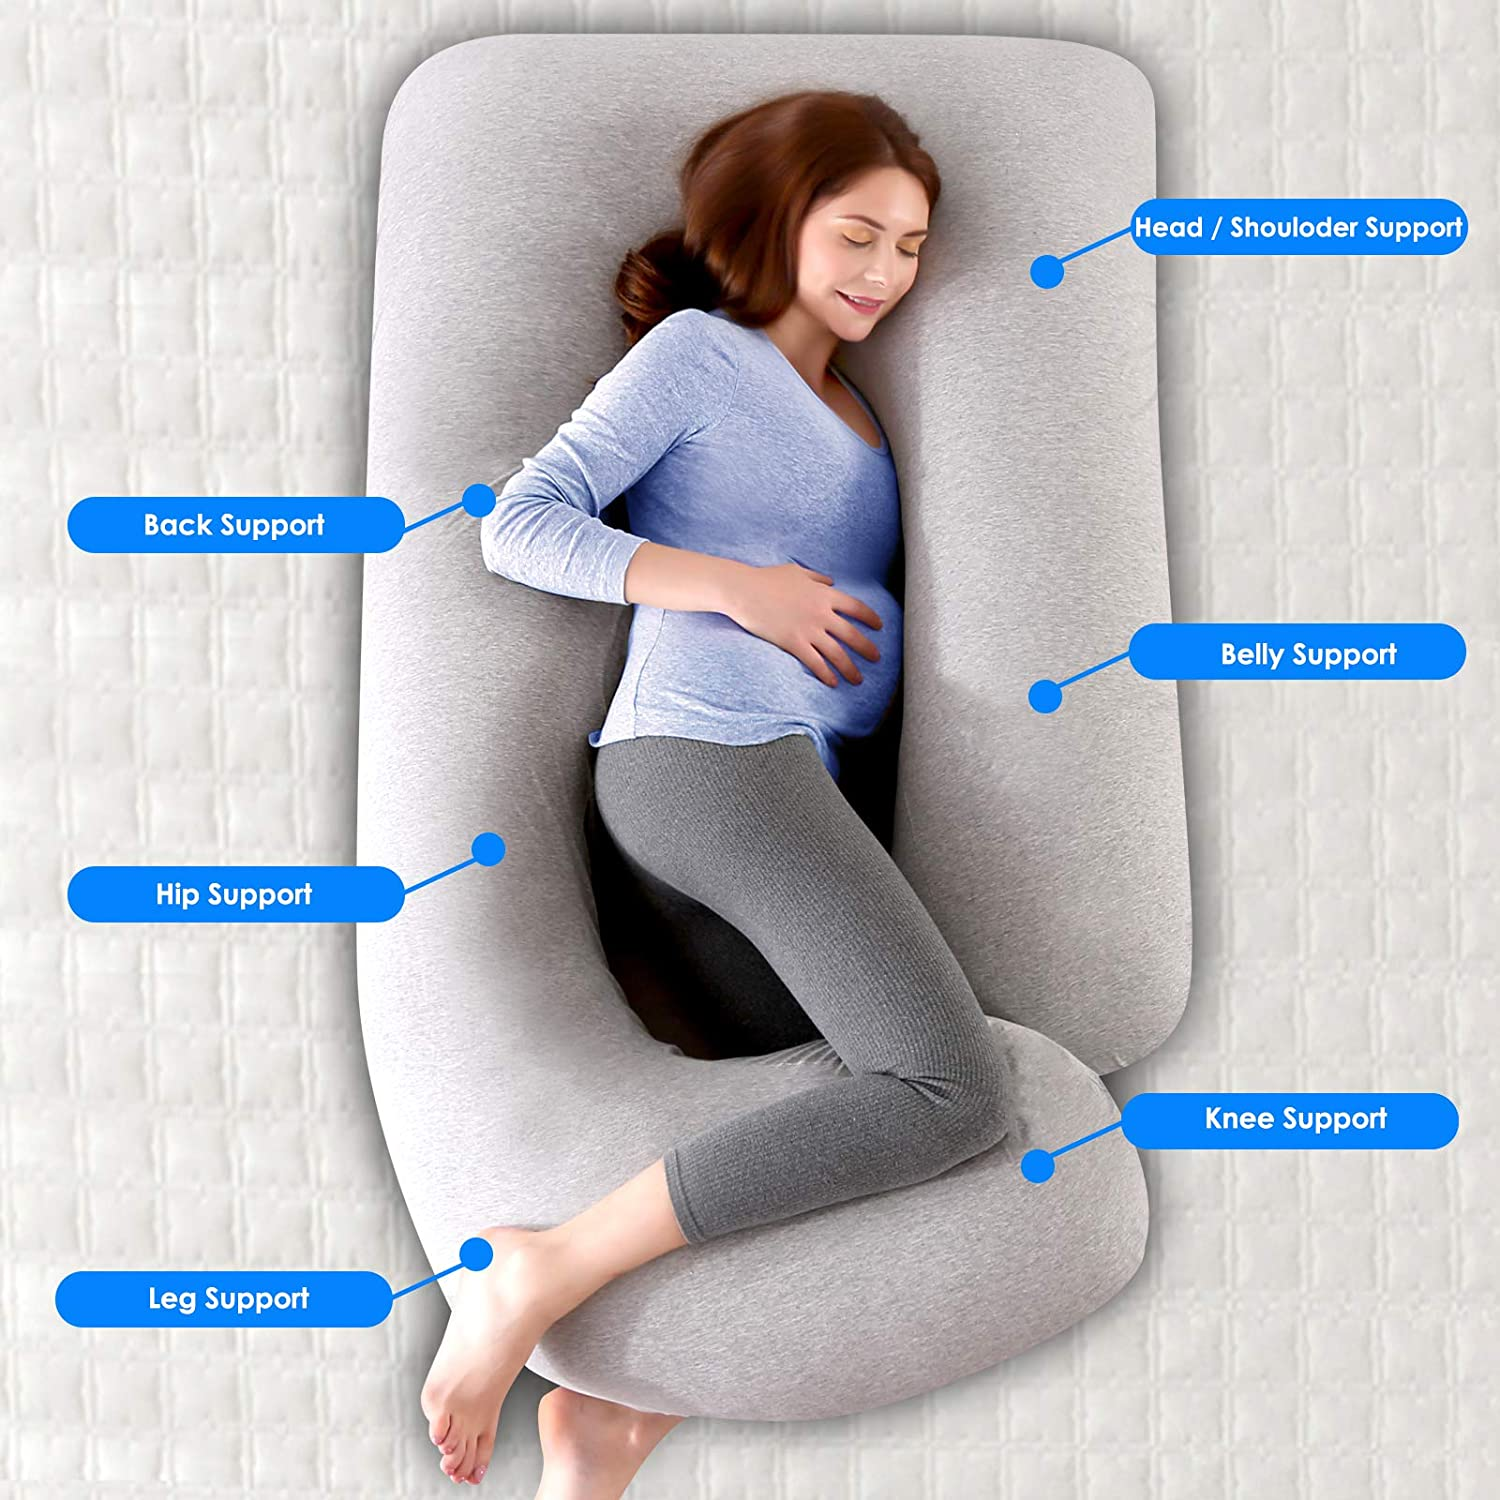 57 inches Pregnancy Support Pillow for Women Nursing Maternity Pillow for Back Hips Legs Belly Pregnancy Pillows U-Shaped Full Body Pillow for Sleeping Maternity Pillow with Washable Jersey Cover